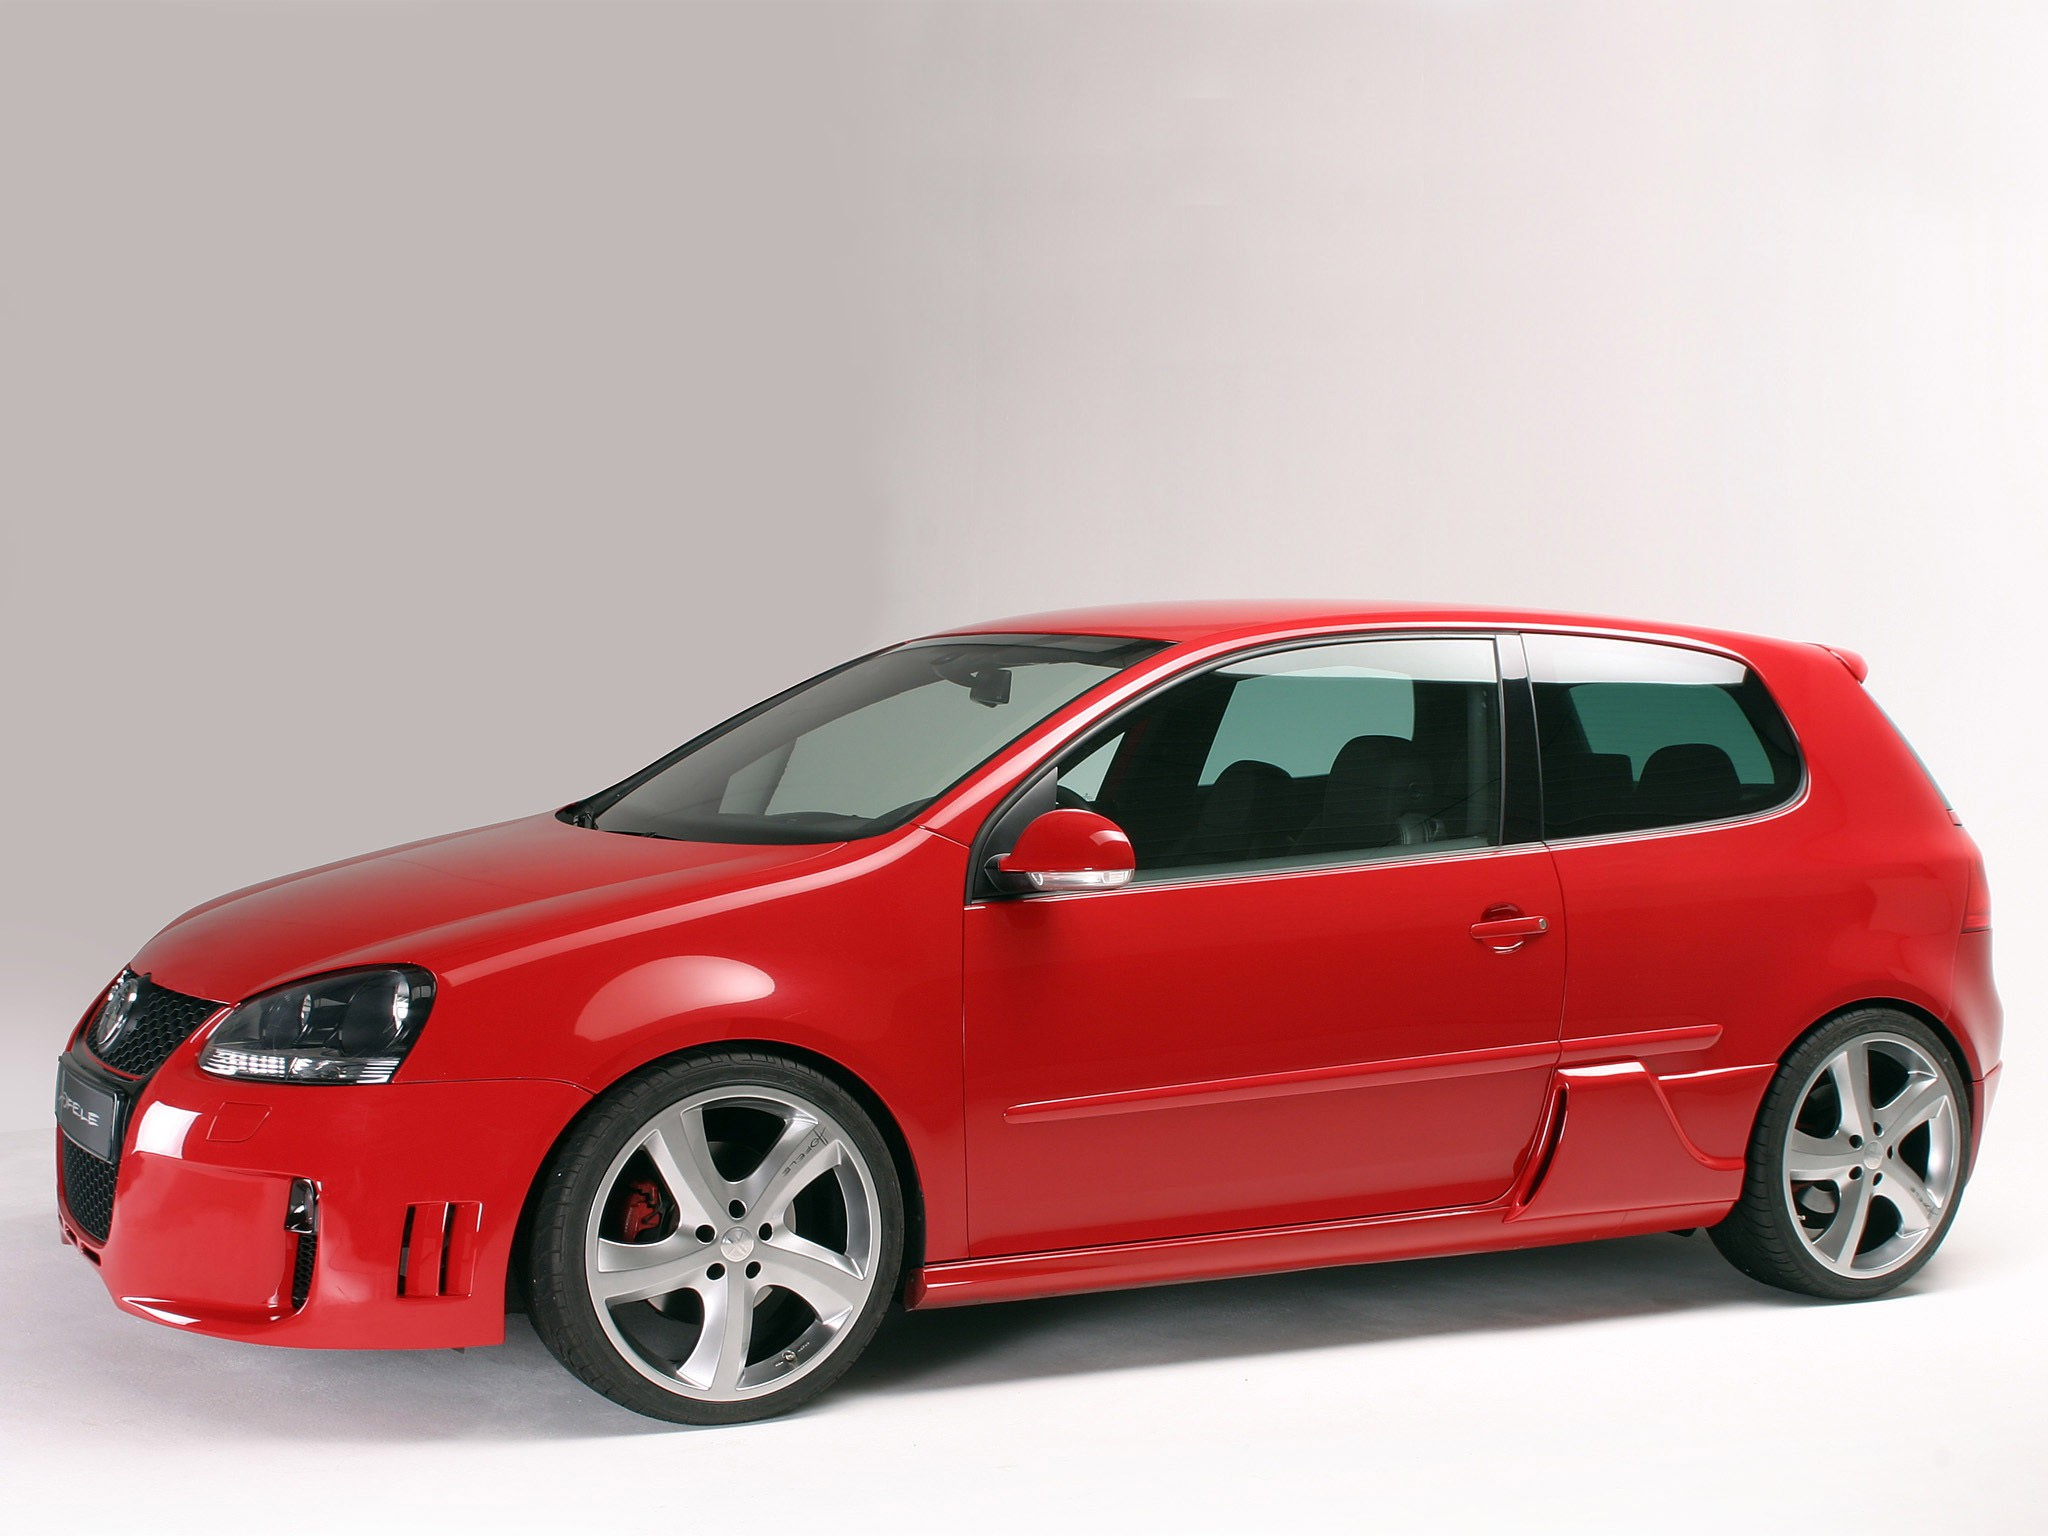 2008 Hofele Design - Volkswagen Golf GTI 3 Door